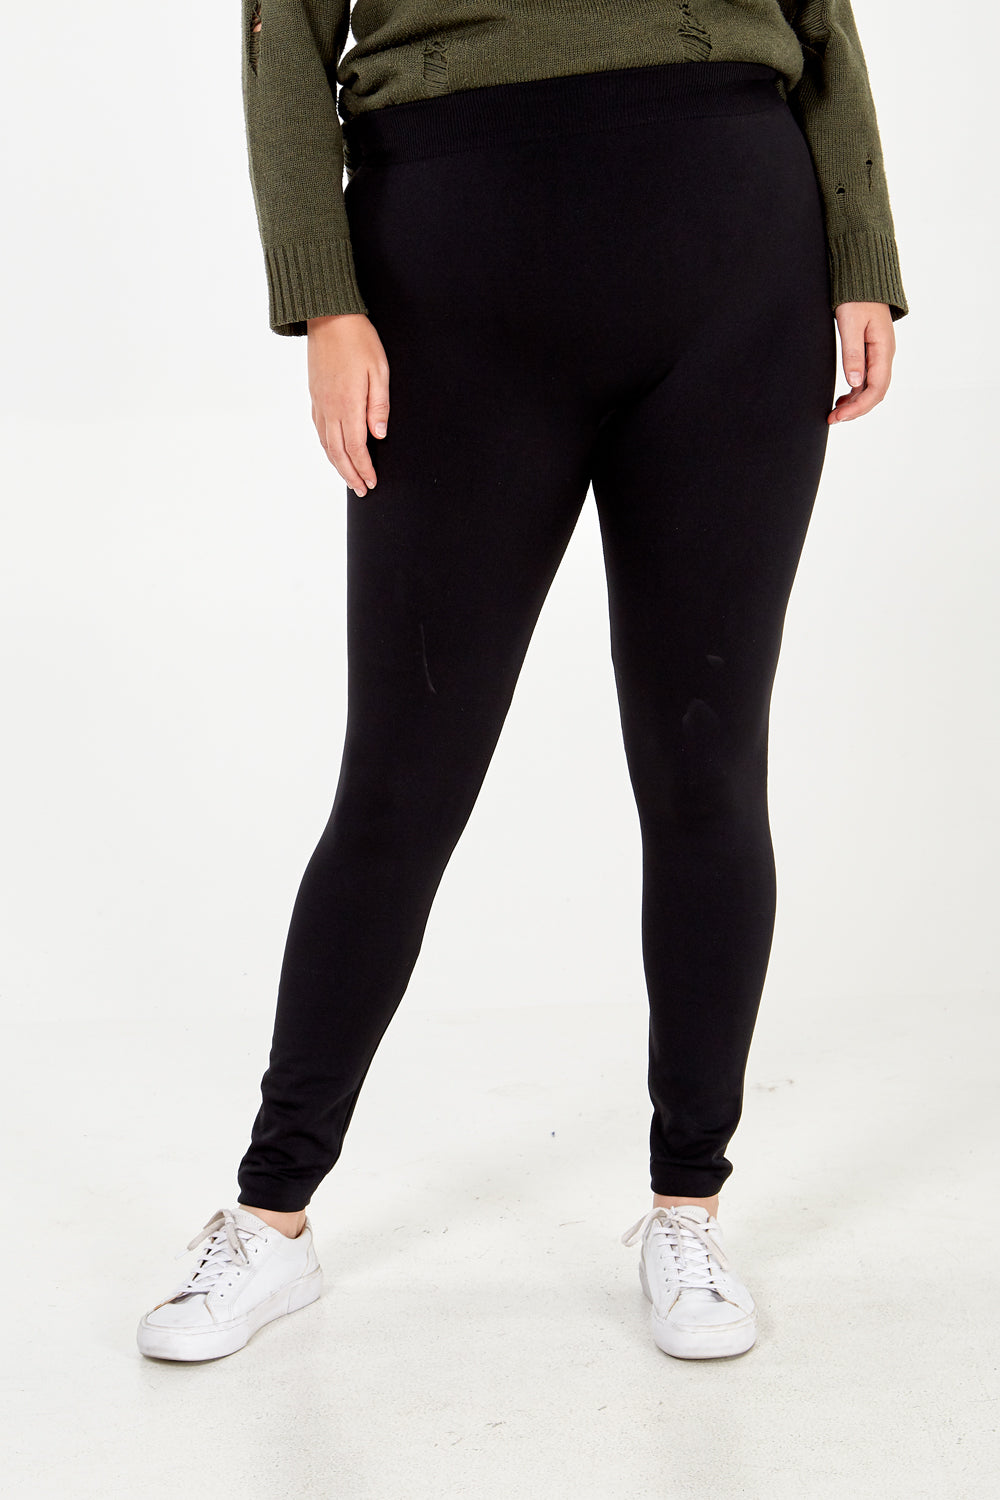 Curve - Fleece Lined Leggings